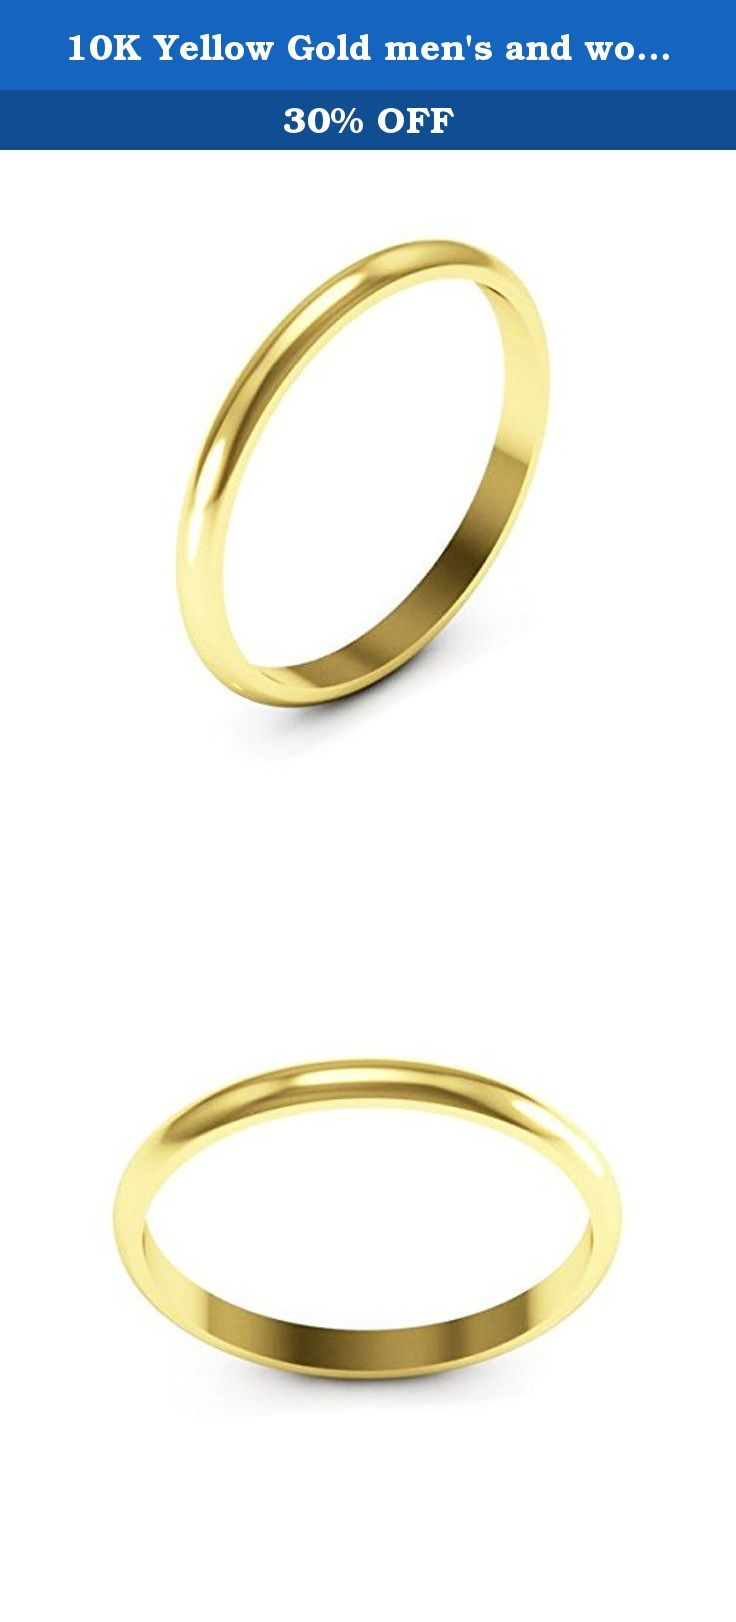 f159afafc0bc1 10K Yellow Gold men's and women's plain wedding bands 2mm non ...